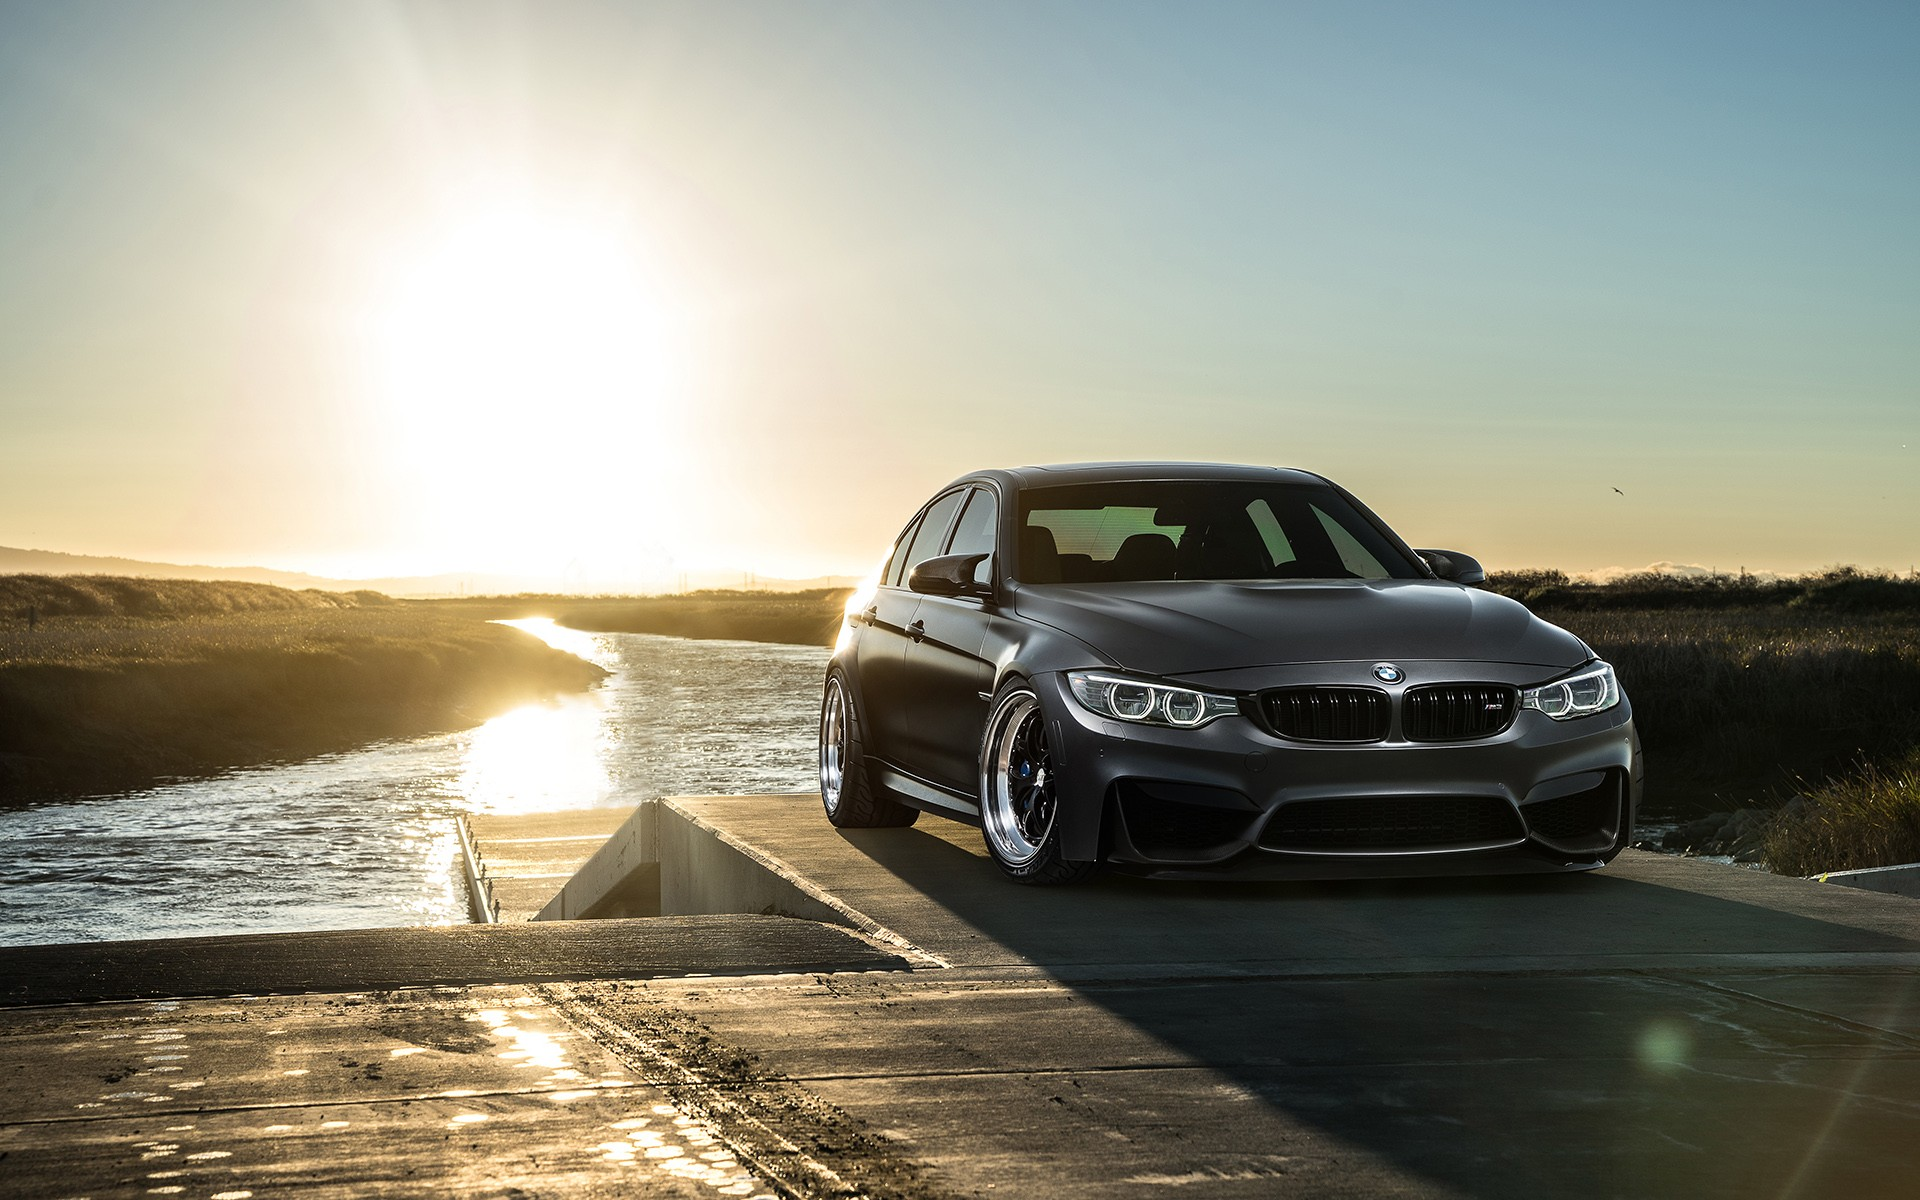 Bmw F80 M3 Mode Carbon Wallpaper Hd Car Wallpapers Id